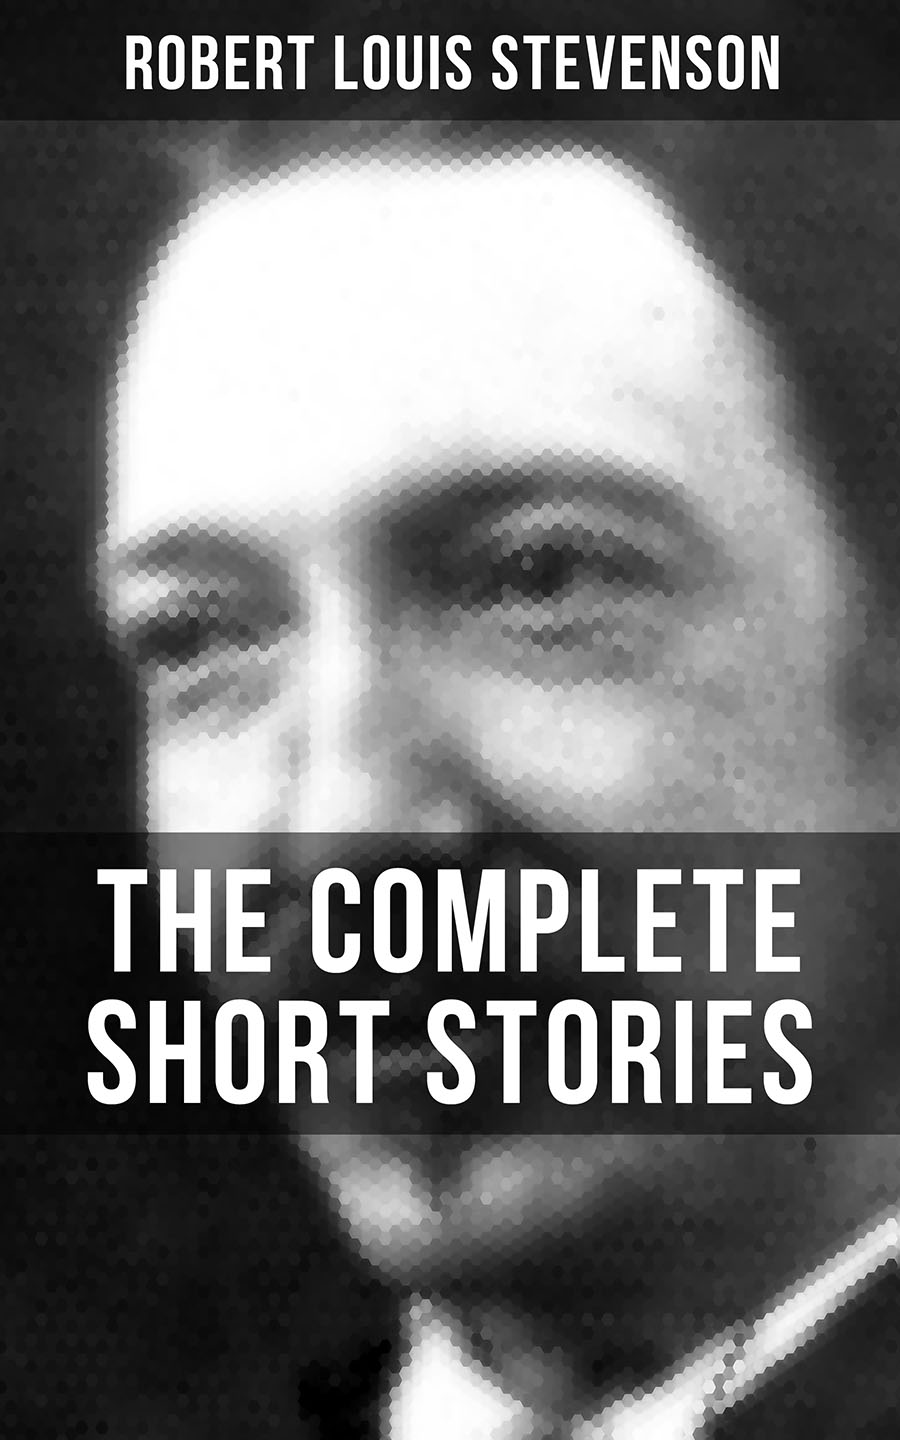 лучшая цена Robert Louis Stevenson THE COMPLETE SHORT STORIES OF R. L. STEVENSON